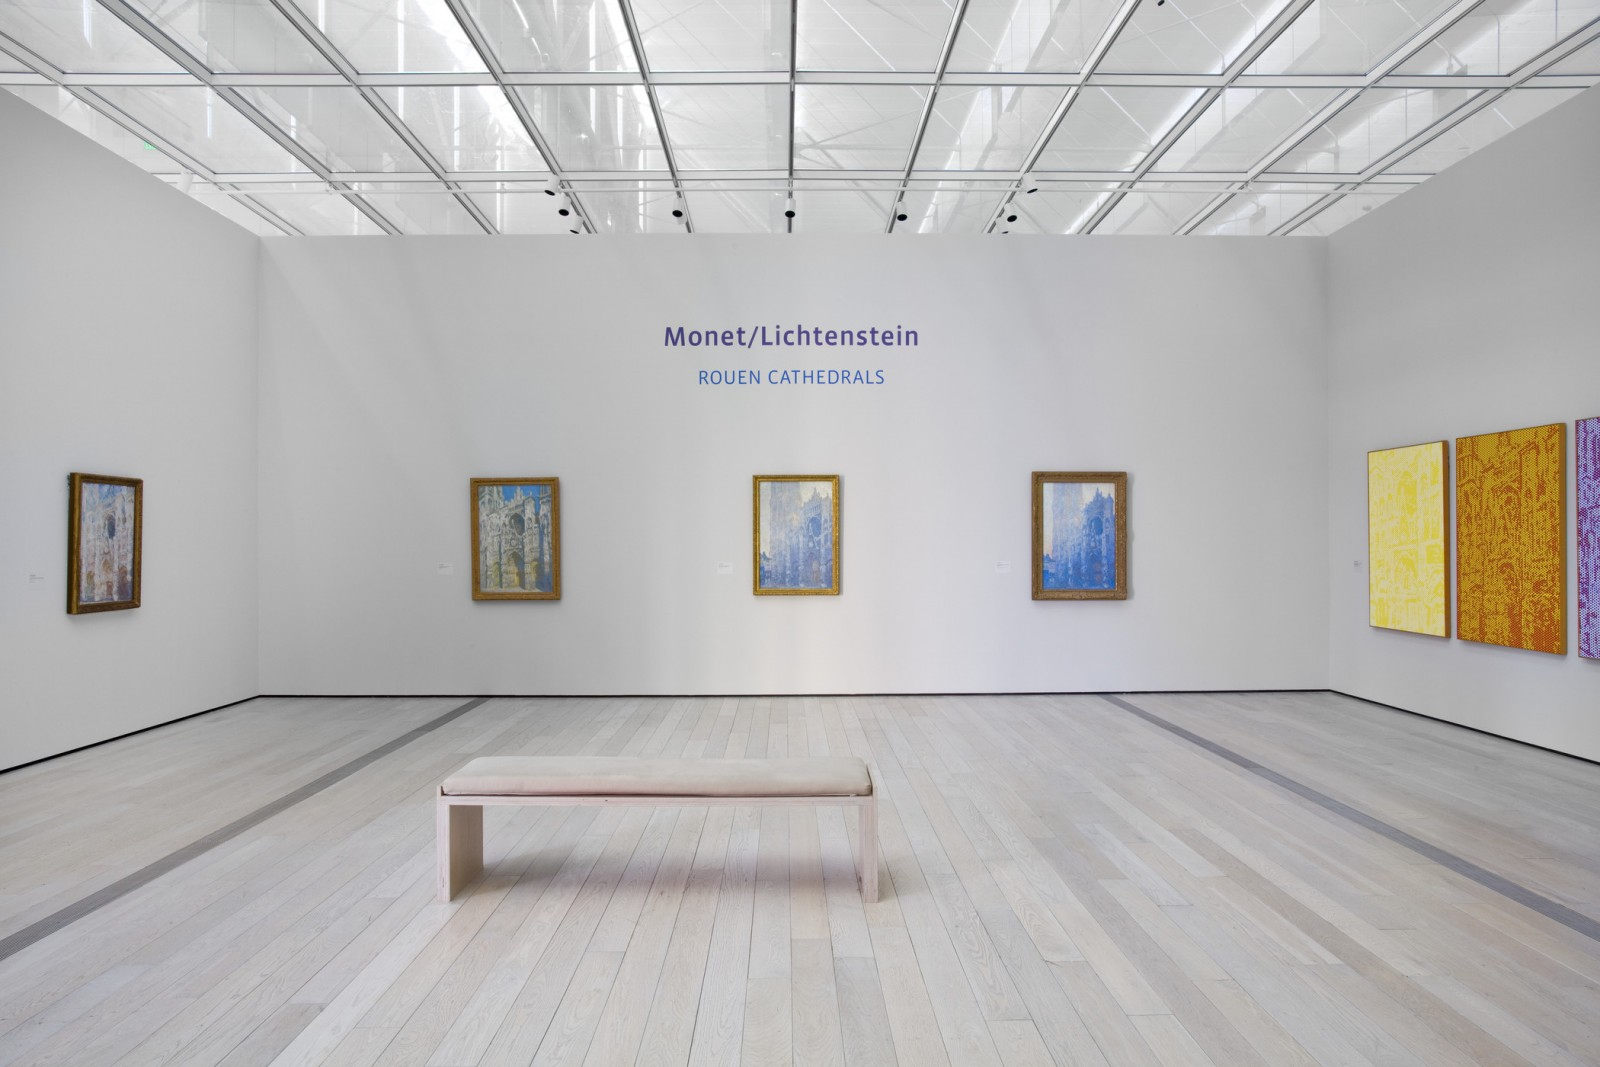 Monet/Lichtenstein: Rouen Cathedrals Install Shot